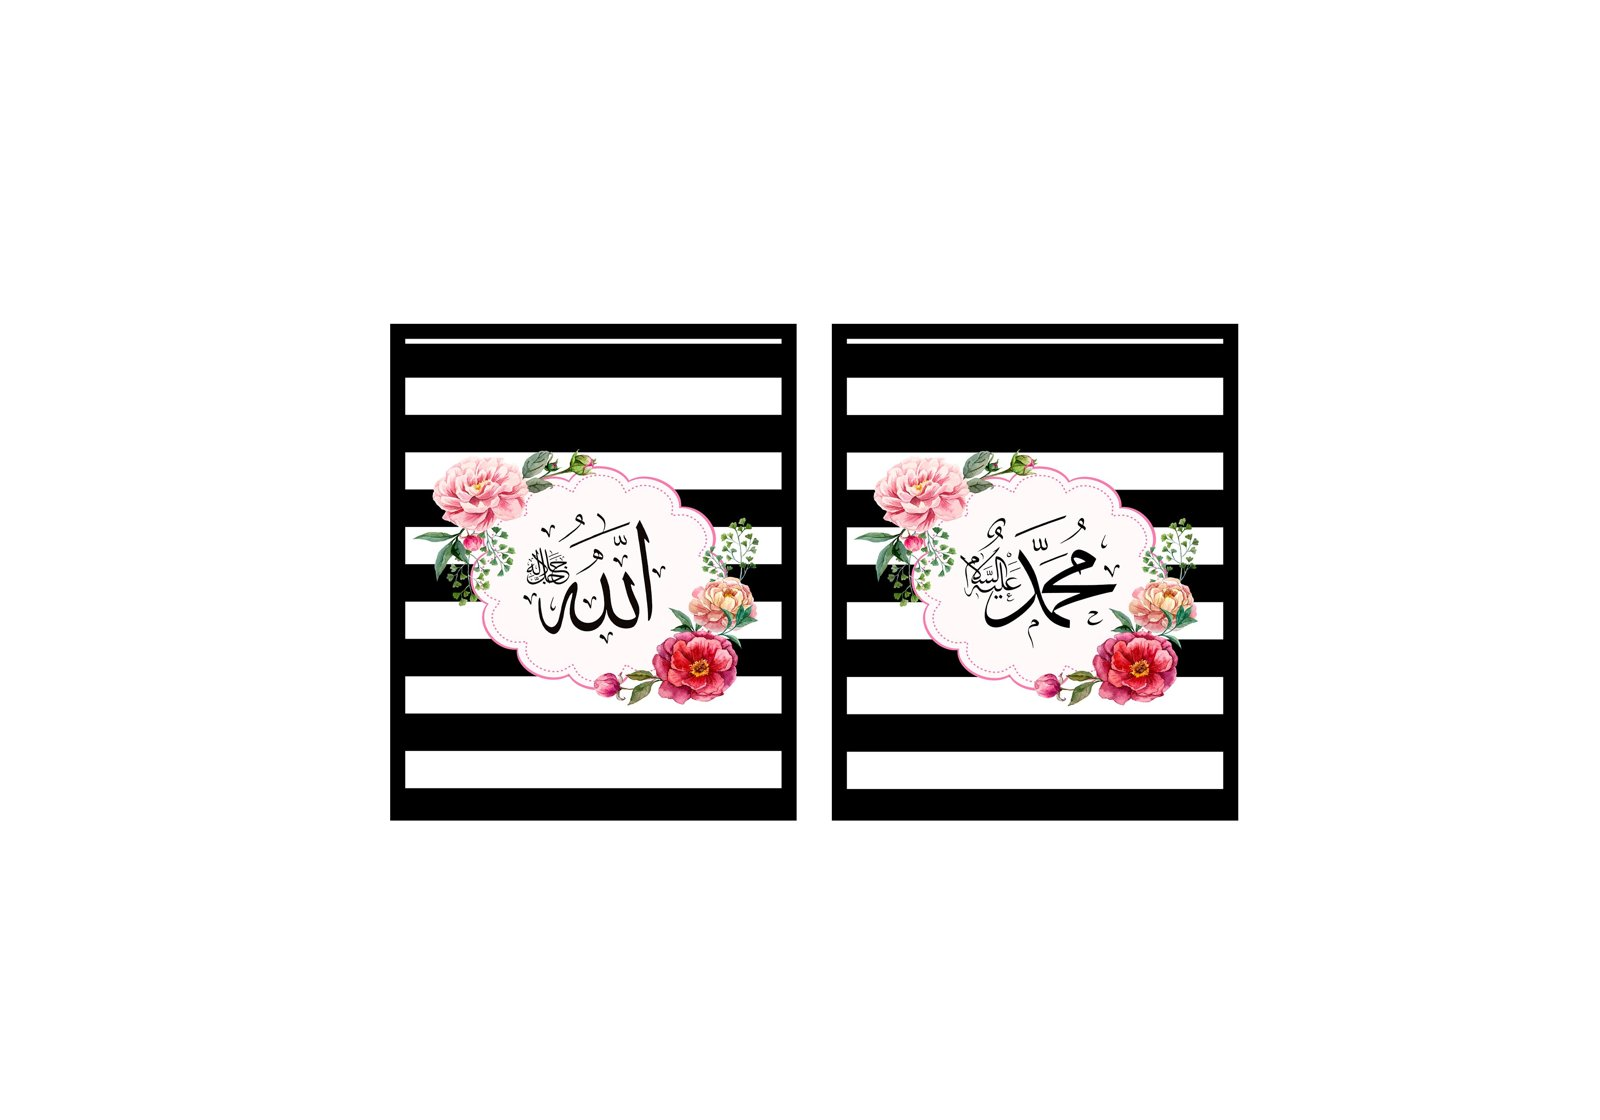 Allah (swt) u. Mohammed (saw)